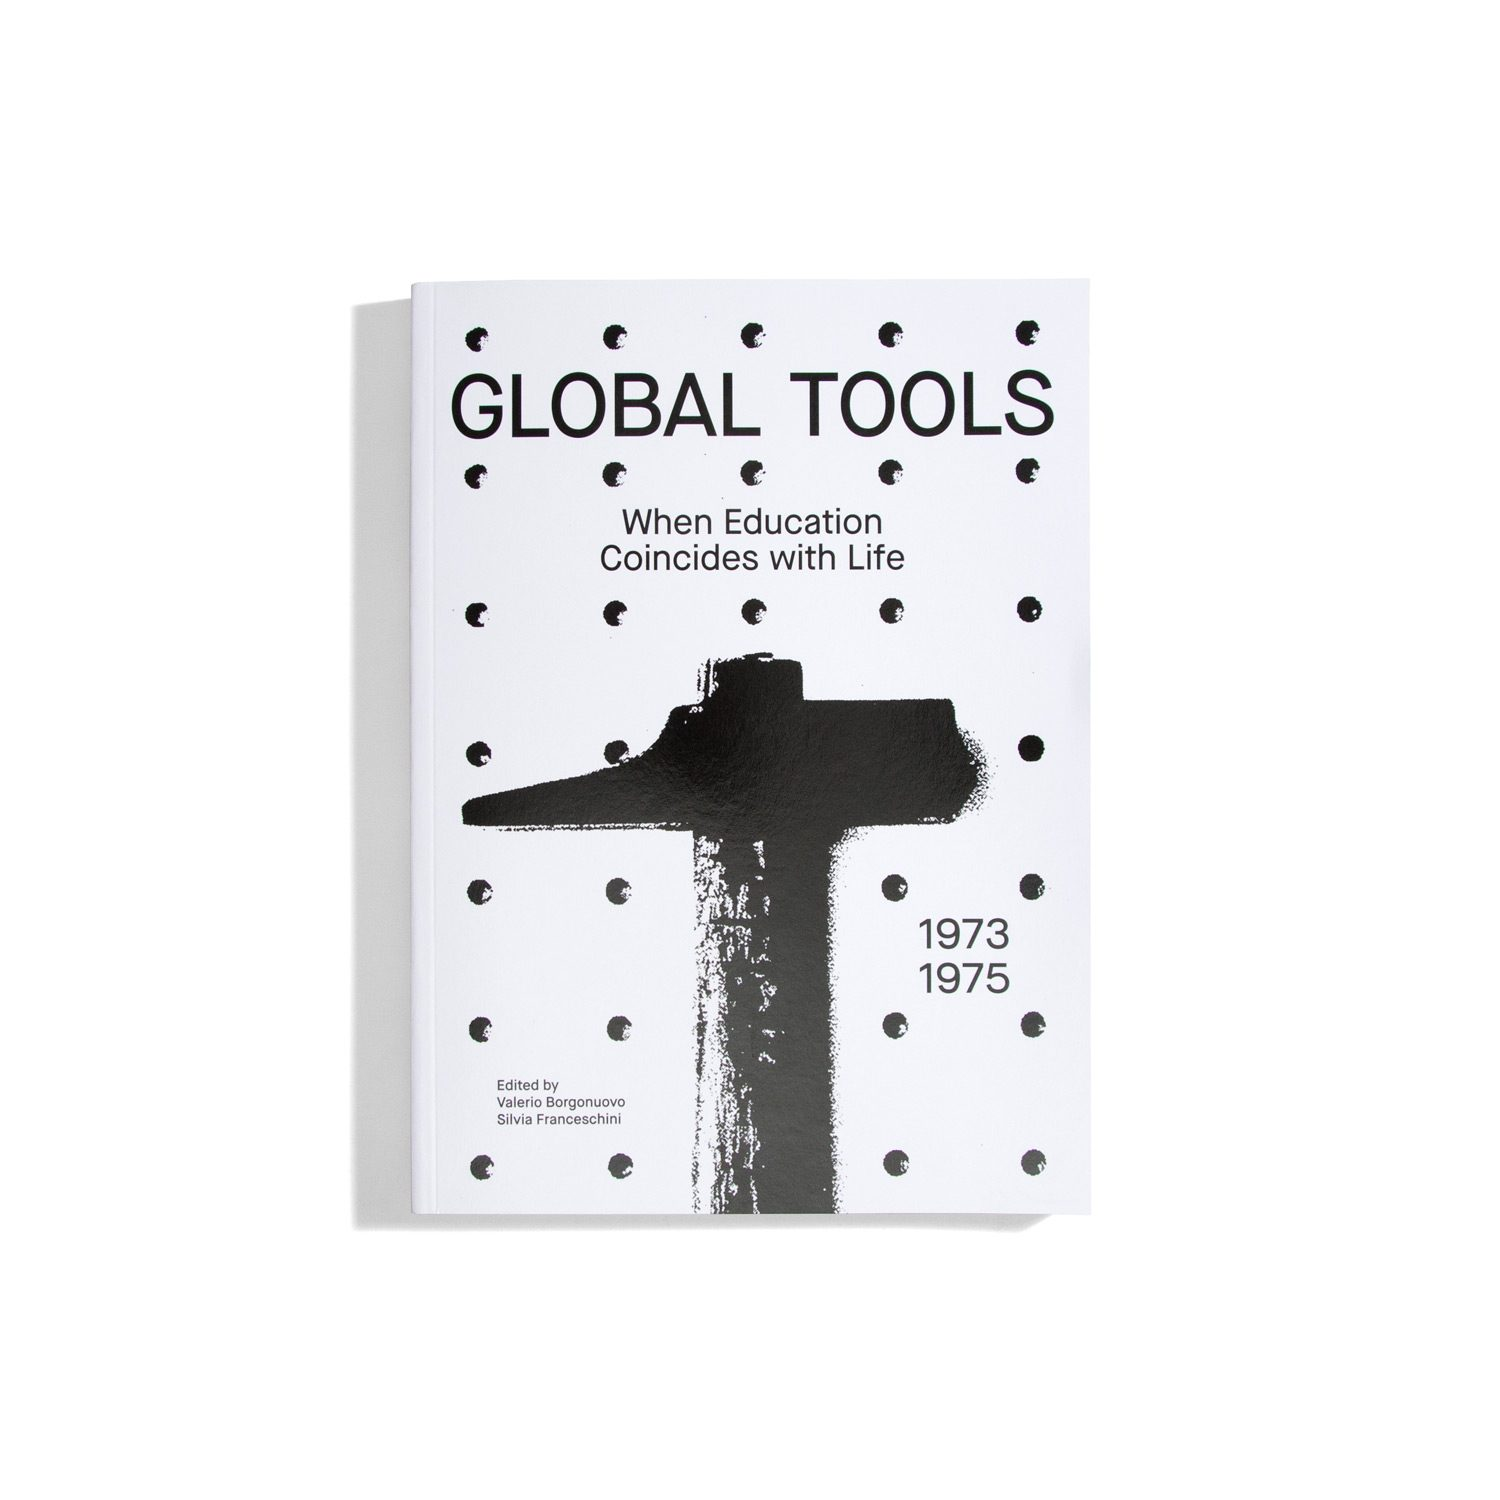 Global Tools 1973-1975 - When Education Coincides with Life